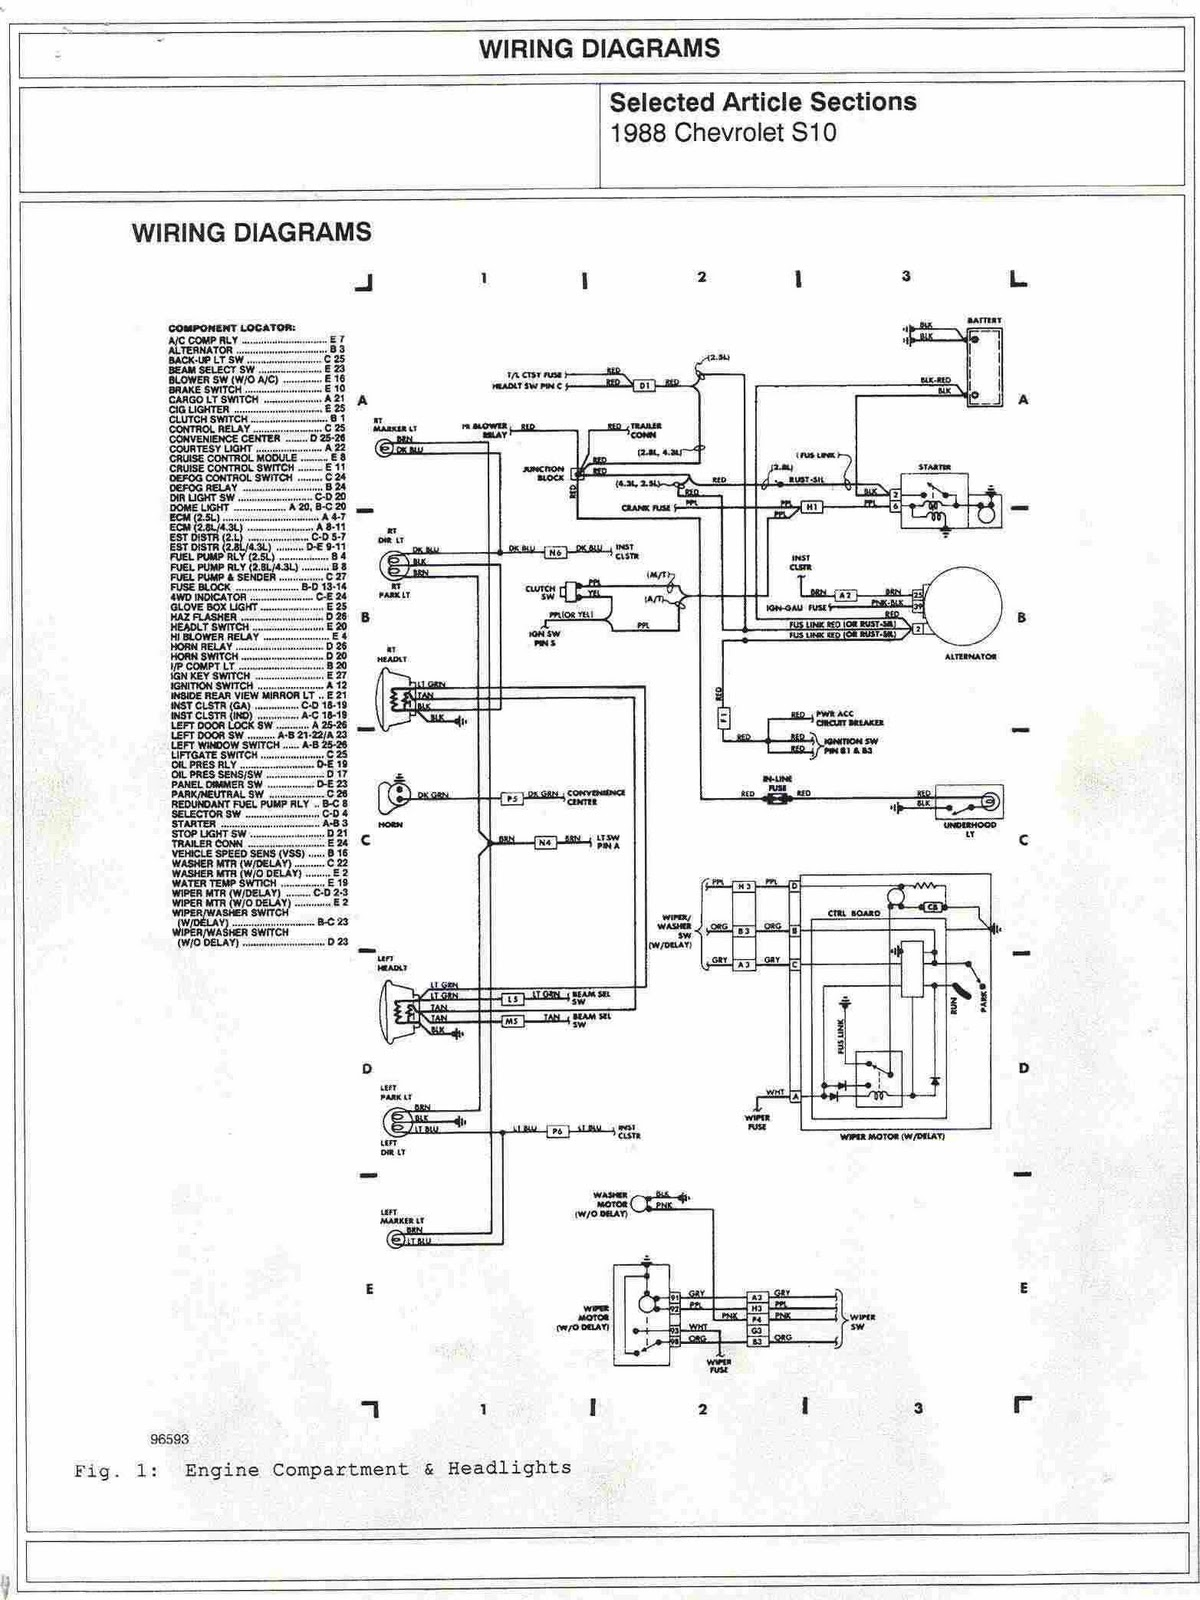 1988+Chevrolet+S10+Engine+Compartment+and+Headlights+Wiring+Diagrams 95 s10 wiring diagram 95 tahoe wiring diagram \u2022 wiring diagrams 1995 chevy silverado fuse box diagram at edmiracle.co